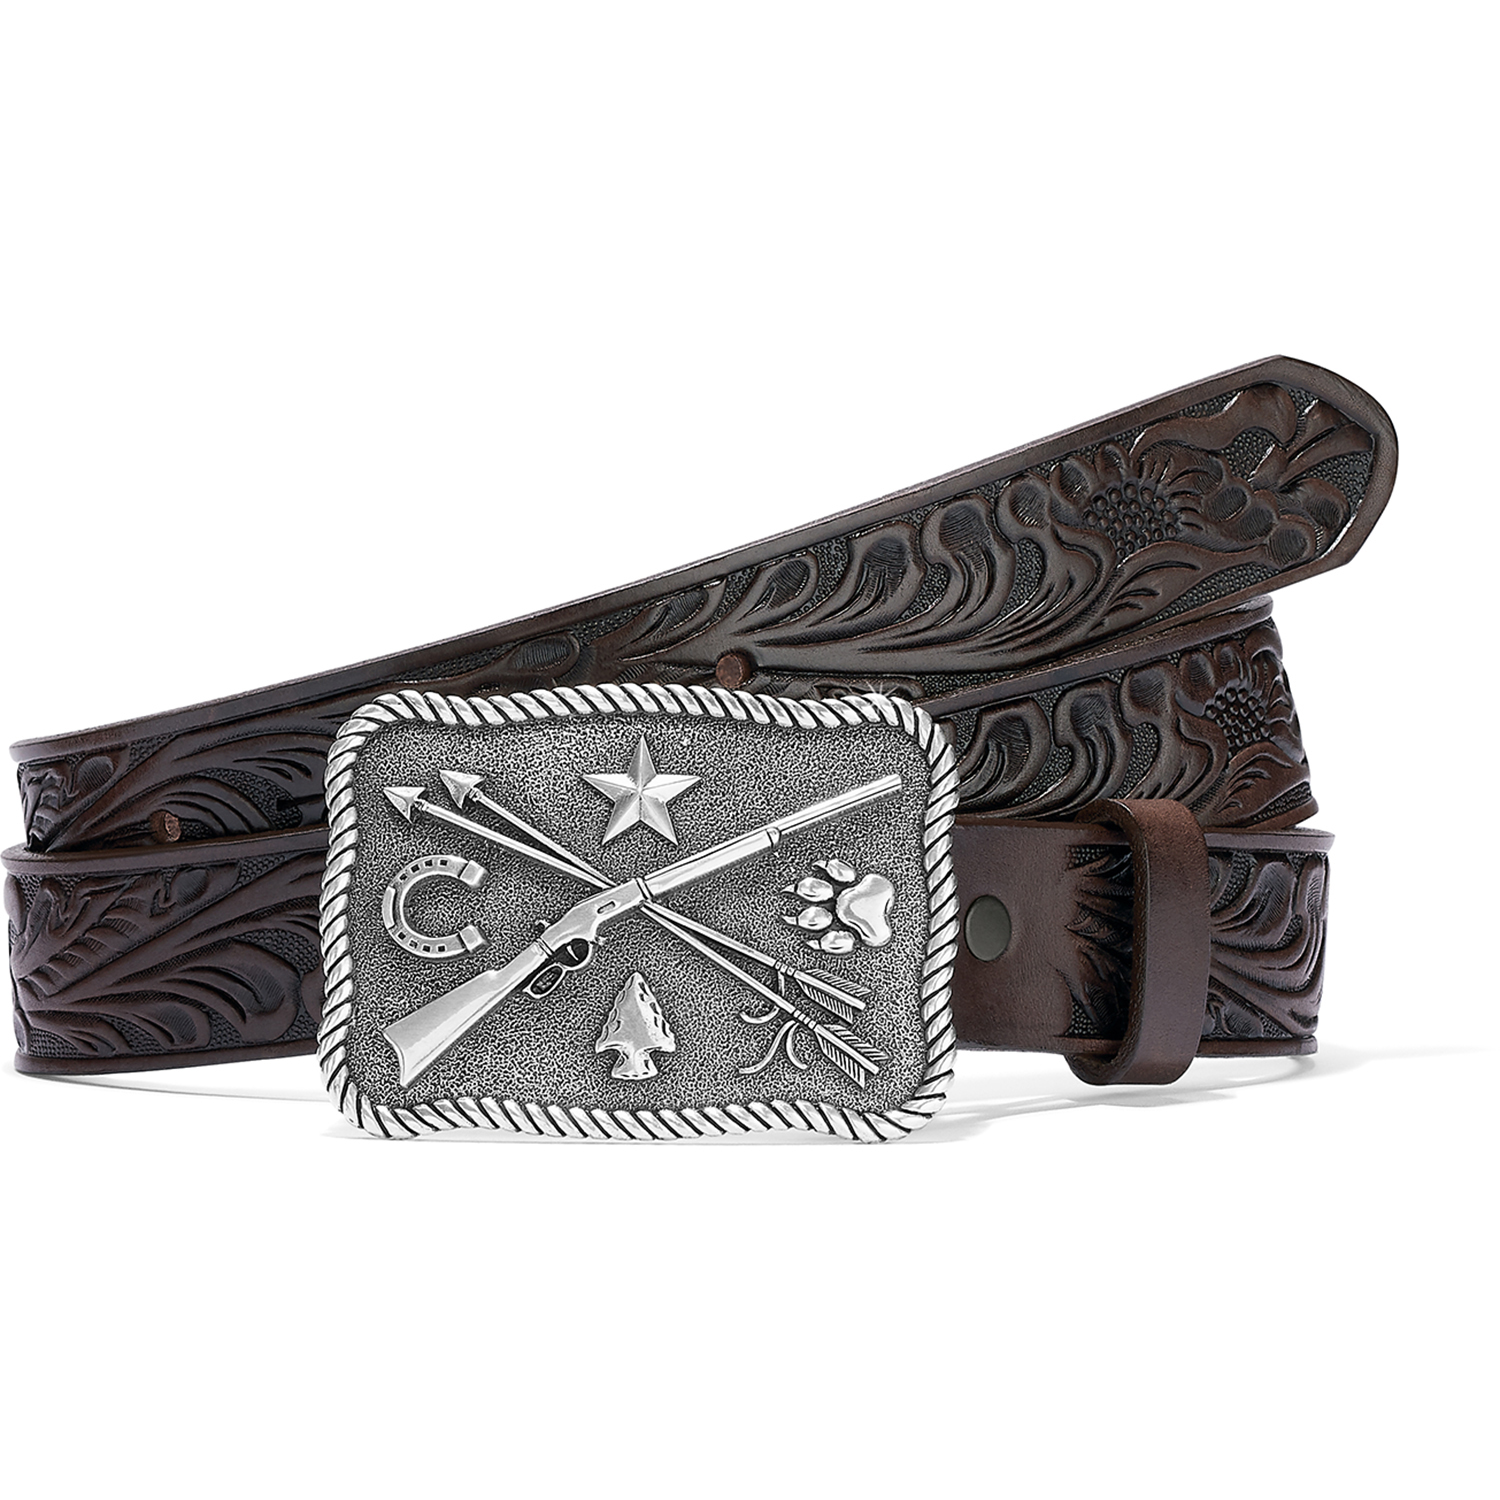 Cowboys & Indians Belt from Tony Lama